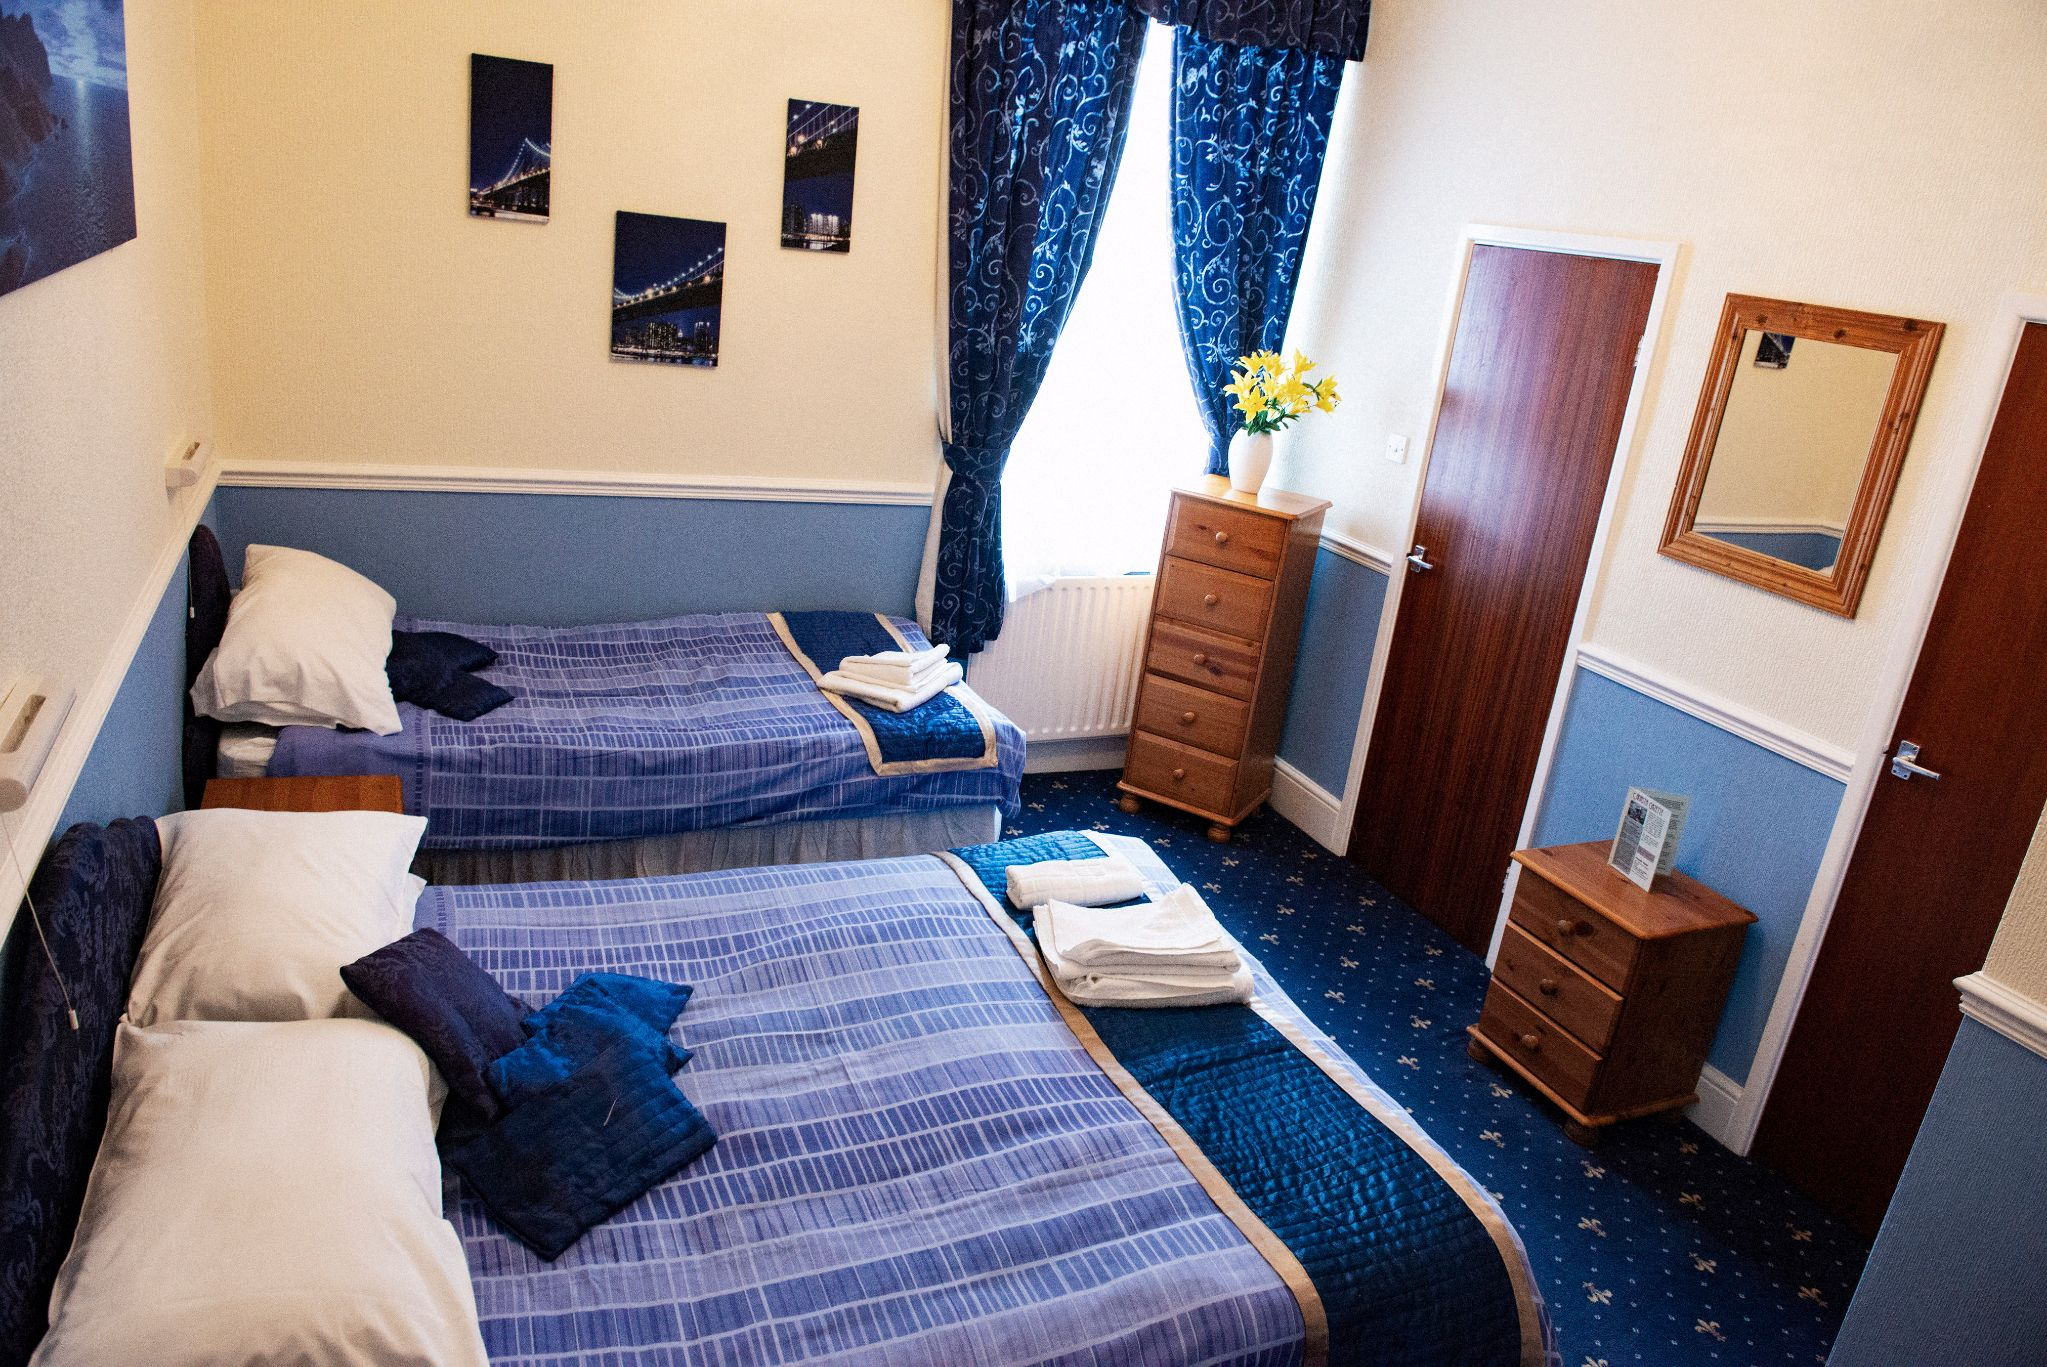 30 Bedroom Hotel For Sale - Photograph 11